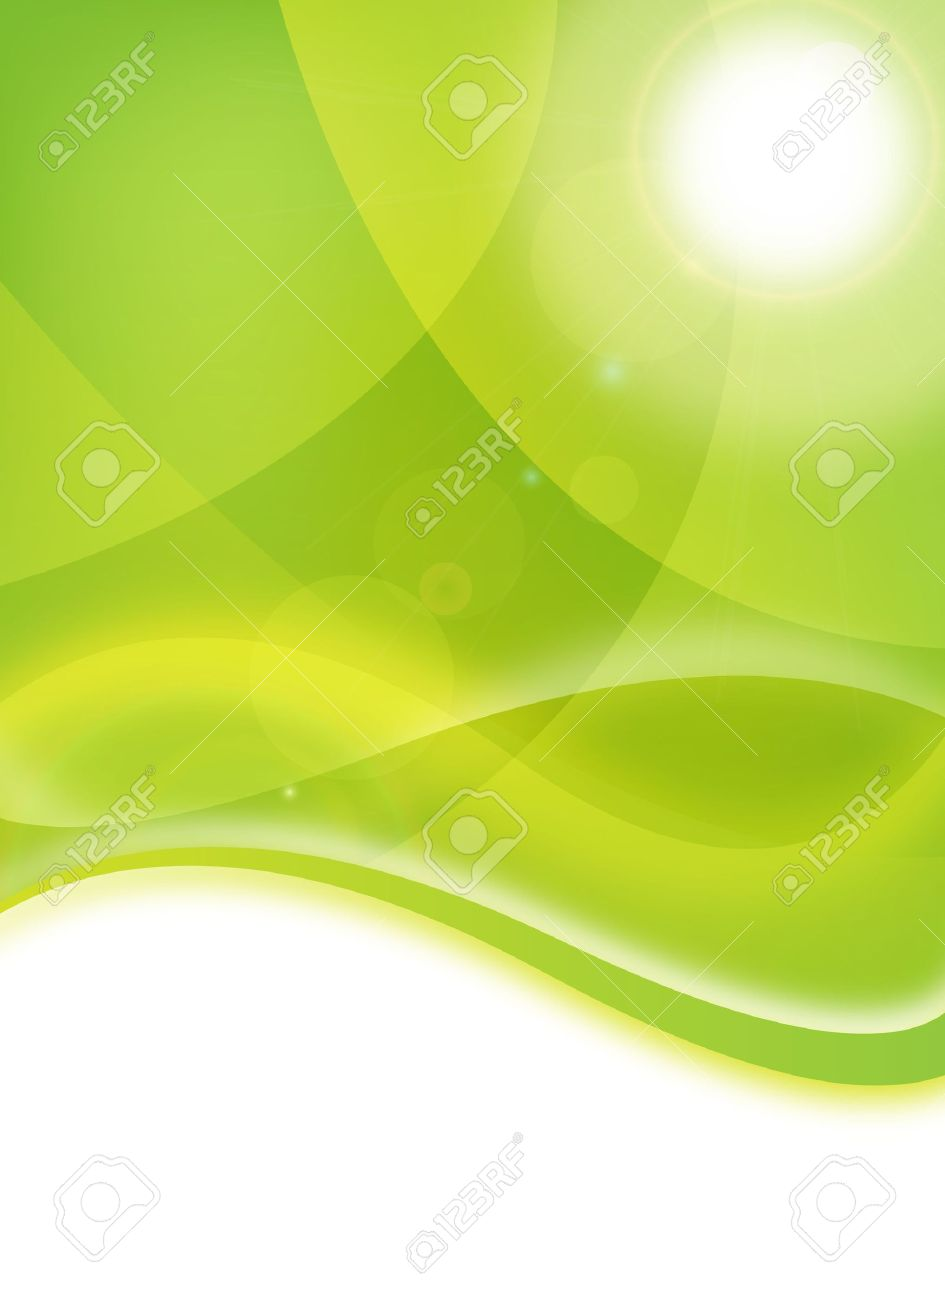 abstract green environmental eco flyer for design stock photo stock photo abstract green environmental eco flyer for design